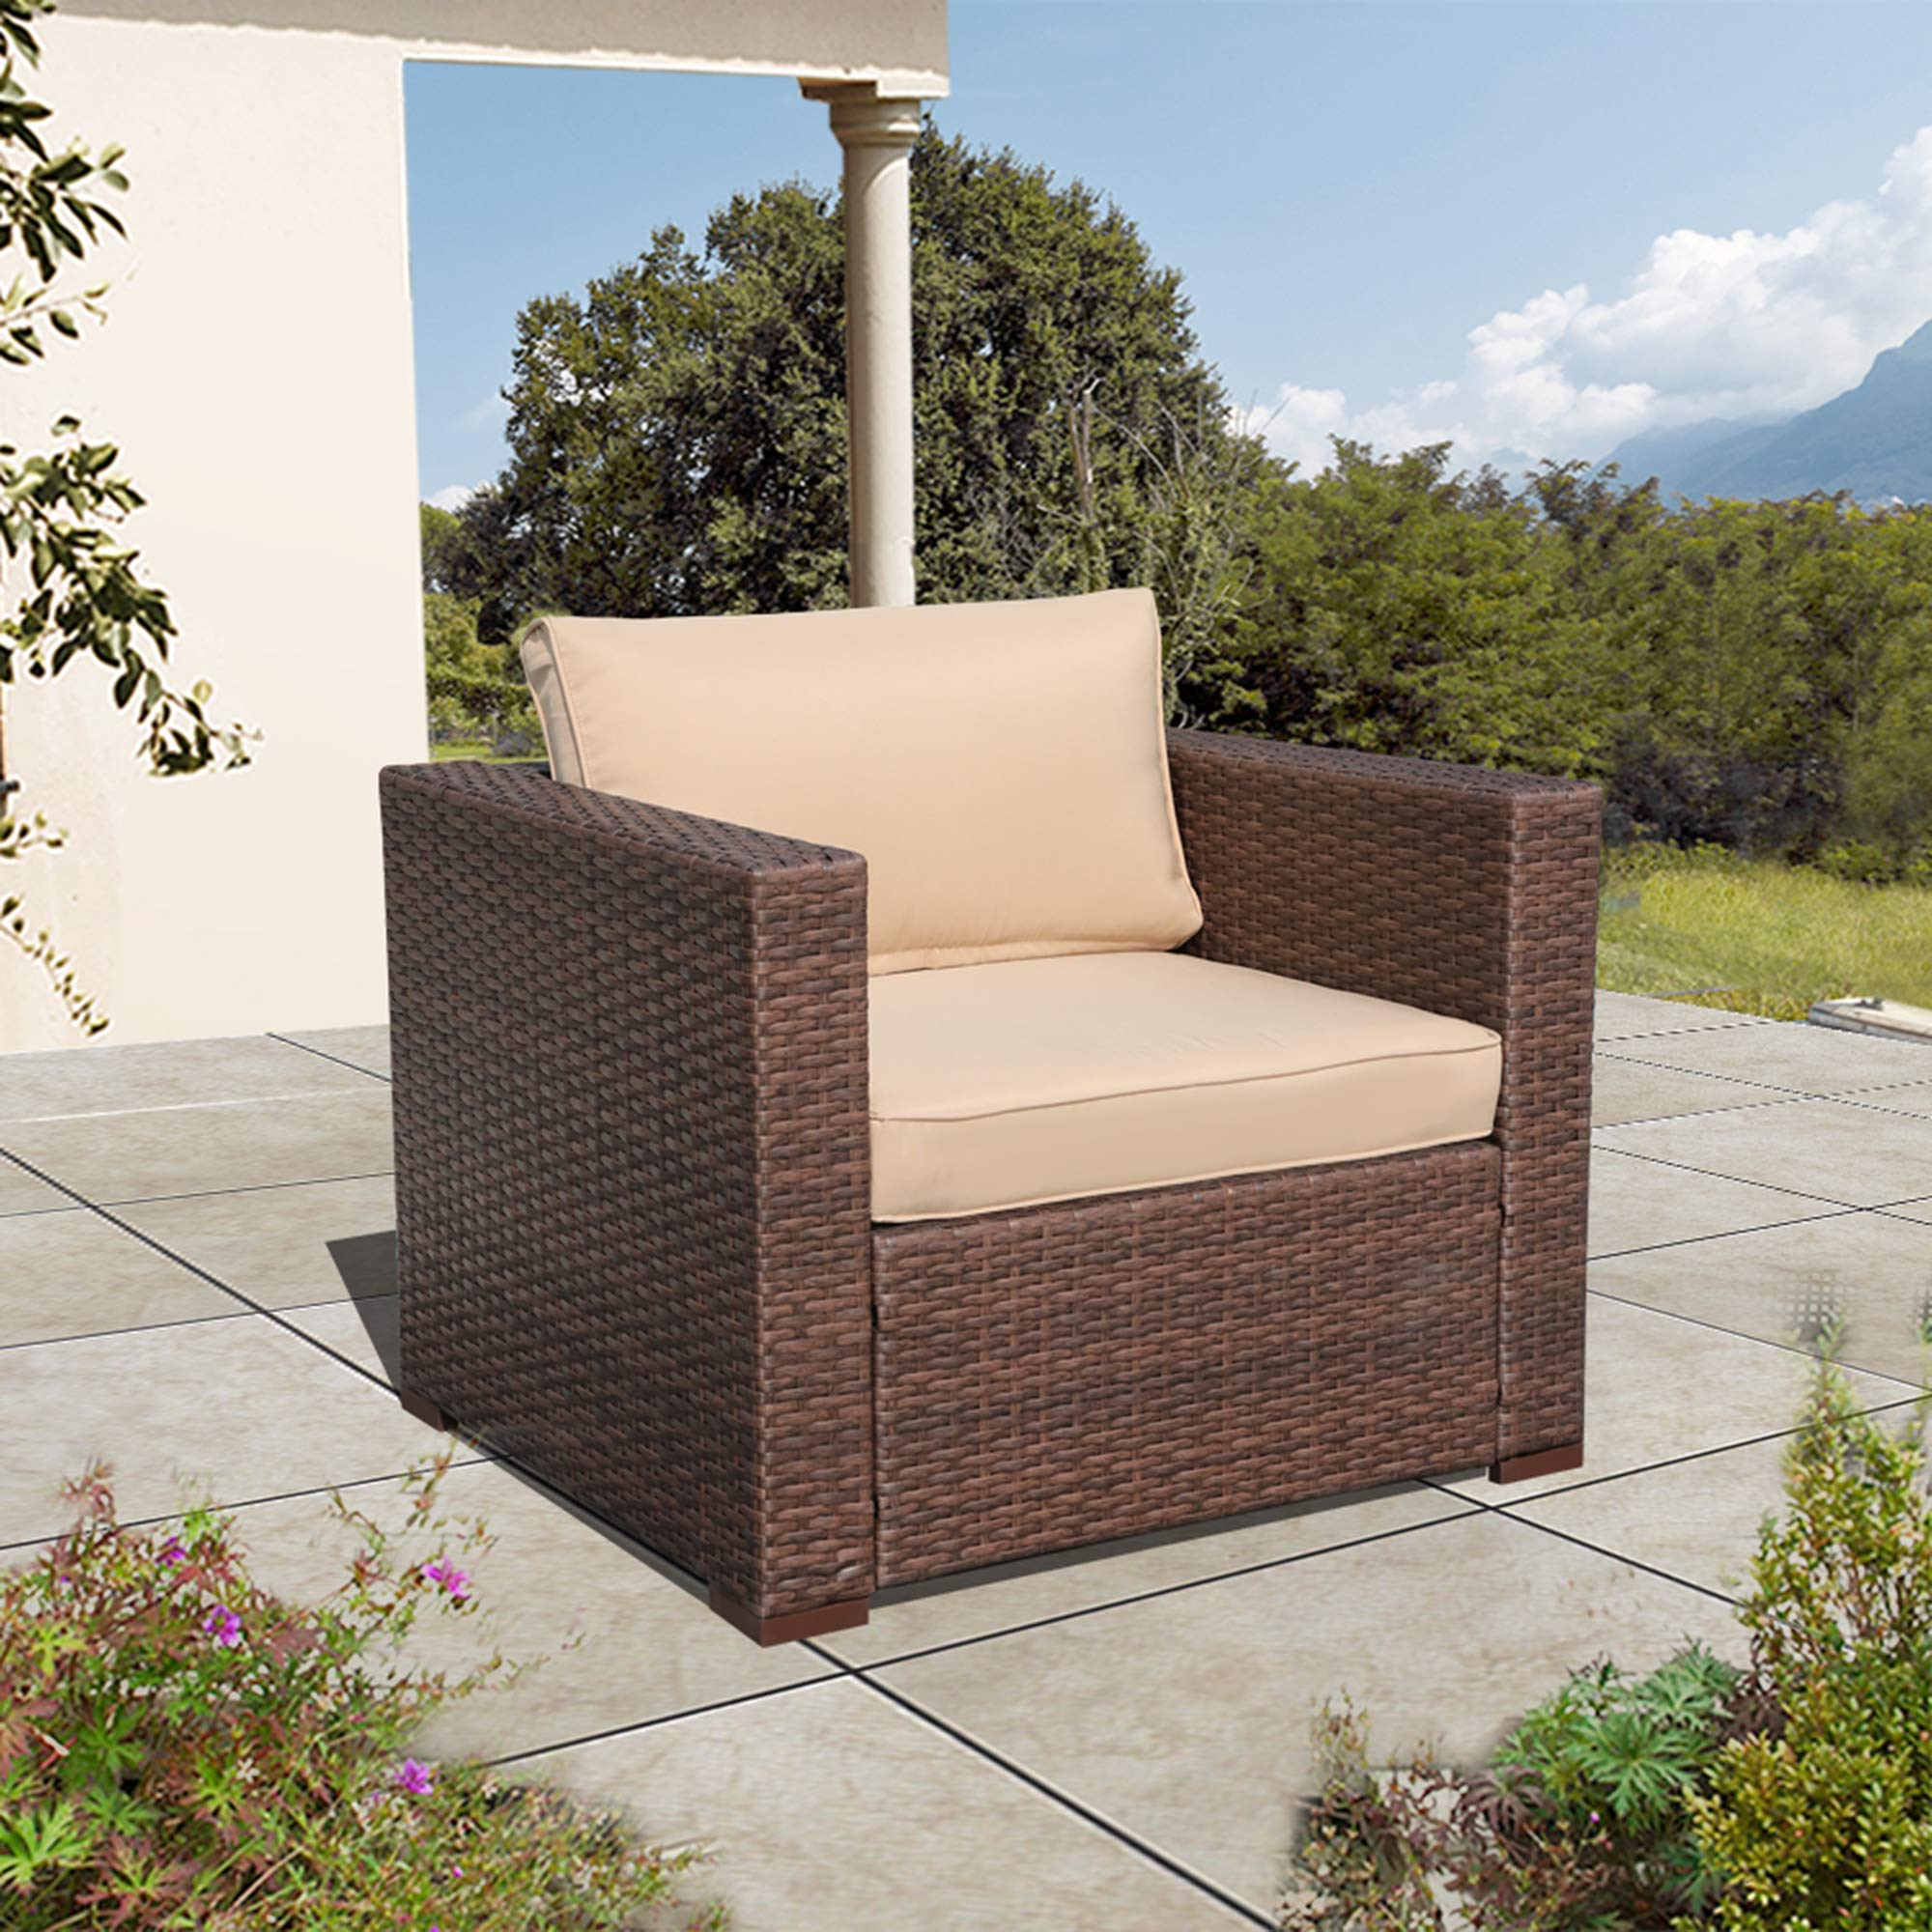 Super Patio Wicker Single Chair, Outdoor Furniture All Weather Wicker Armchair Sofa Thick Beige Cushions, Steel Frame, Brown by Super Patio